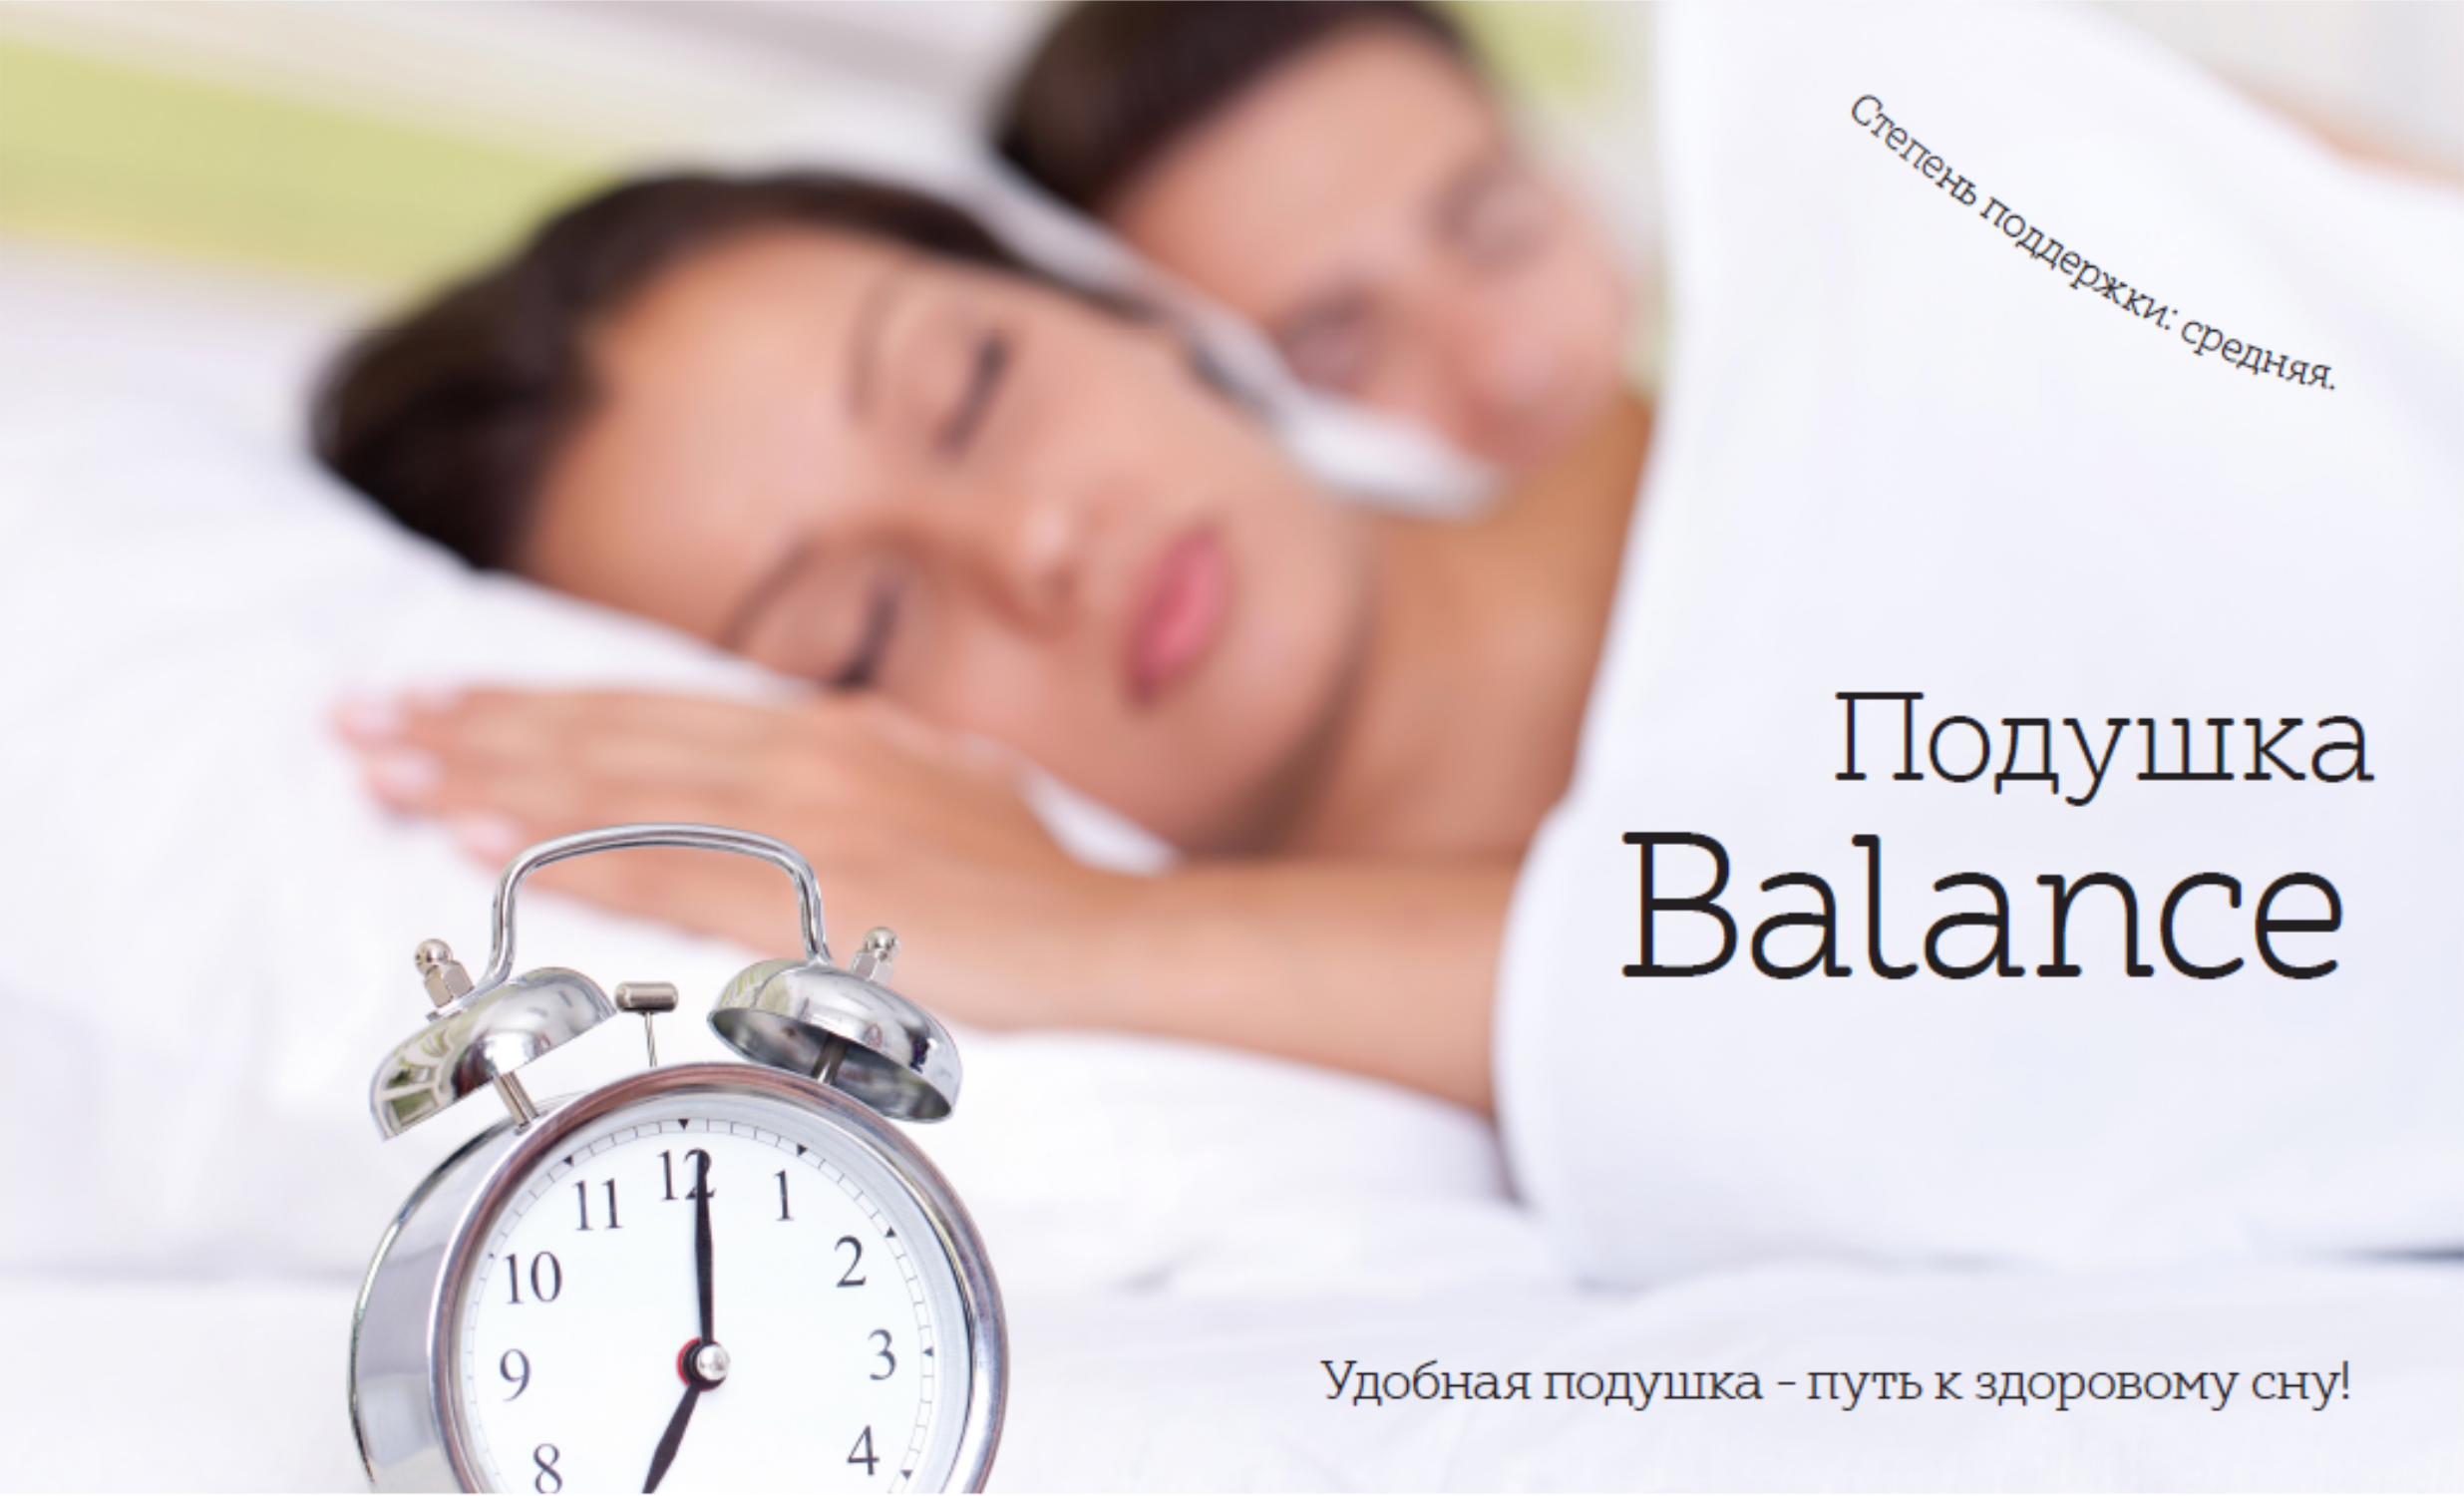 http://swisshomeshop.ru/images/upload/podushka_balance.png